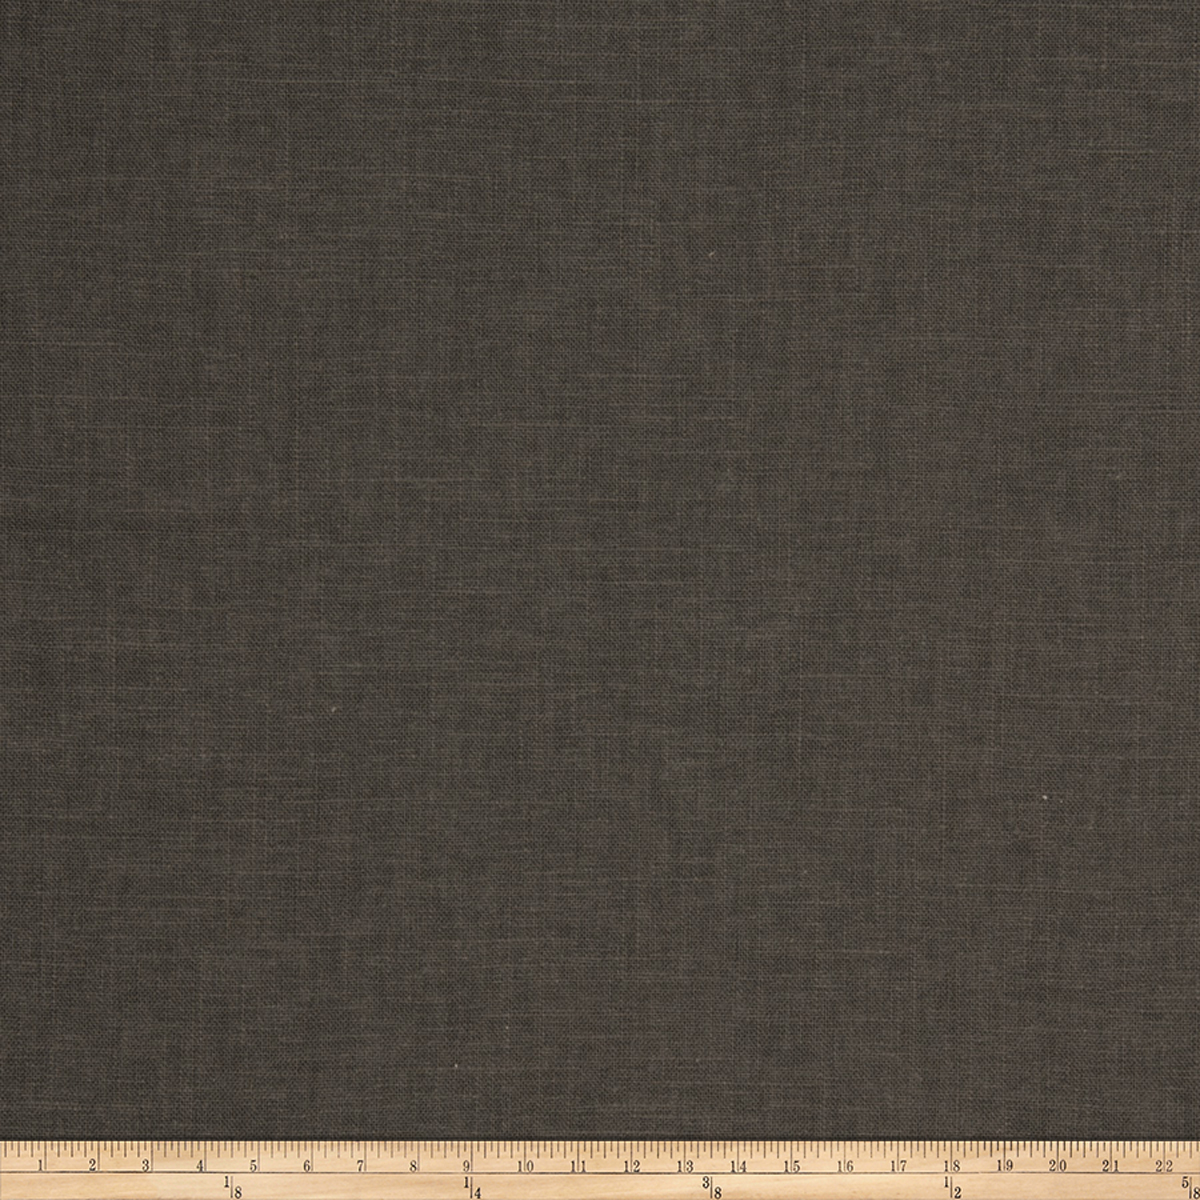 Image of Jaclyn Smith 02636 Linen Steel Fabric